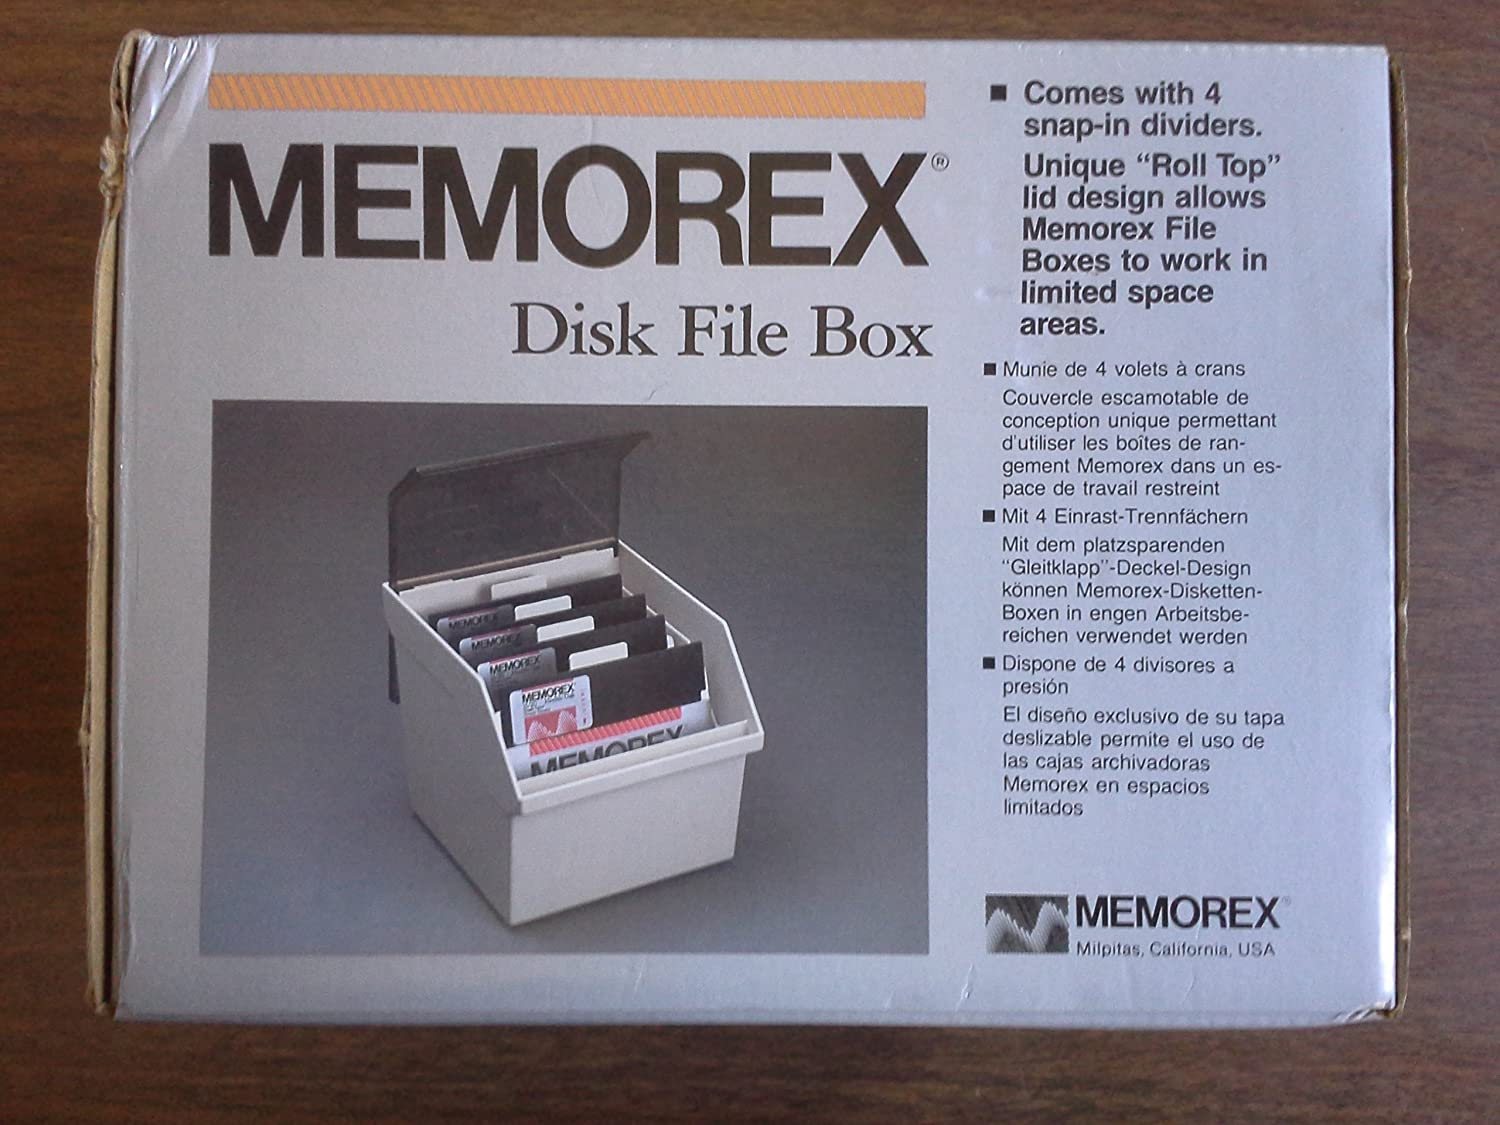 Amazon.com: Memorex Floppy Disk File Box (5) 5 1/4, 5.25 NIB: Computers & Accessories